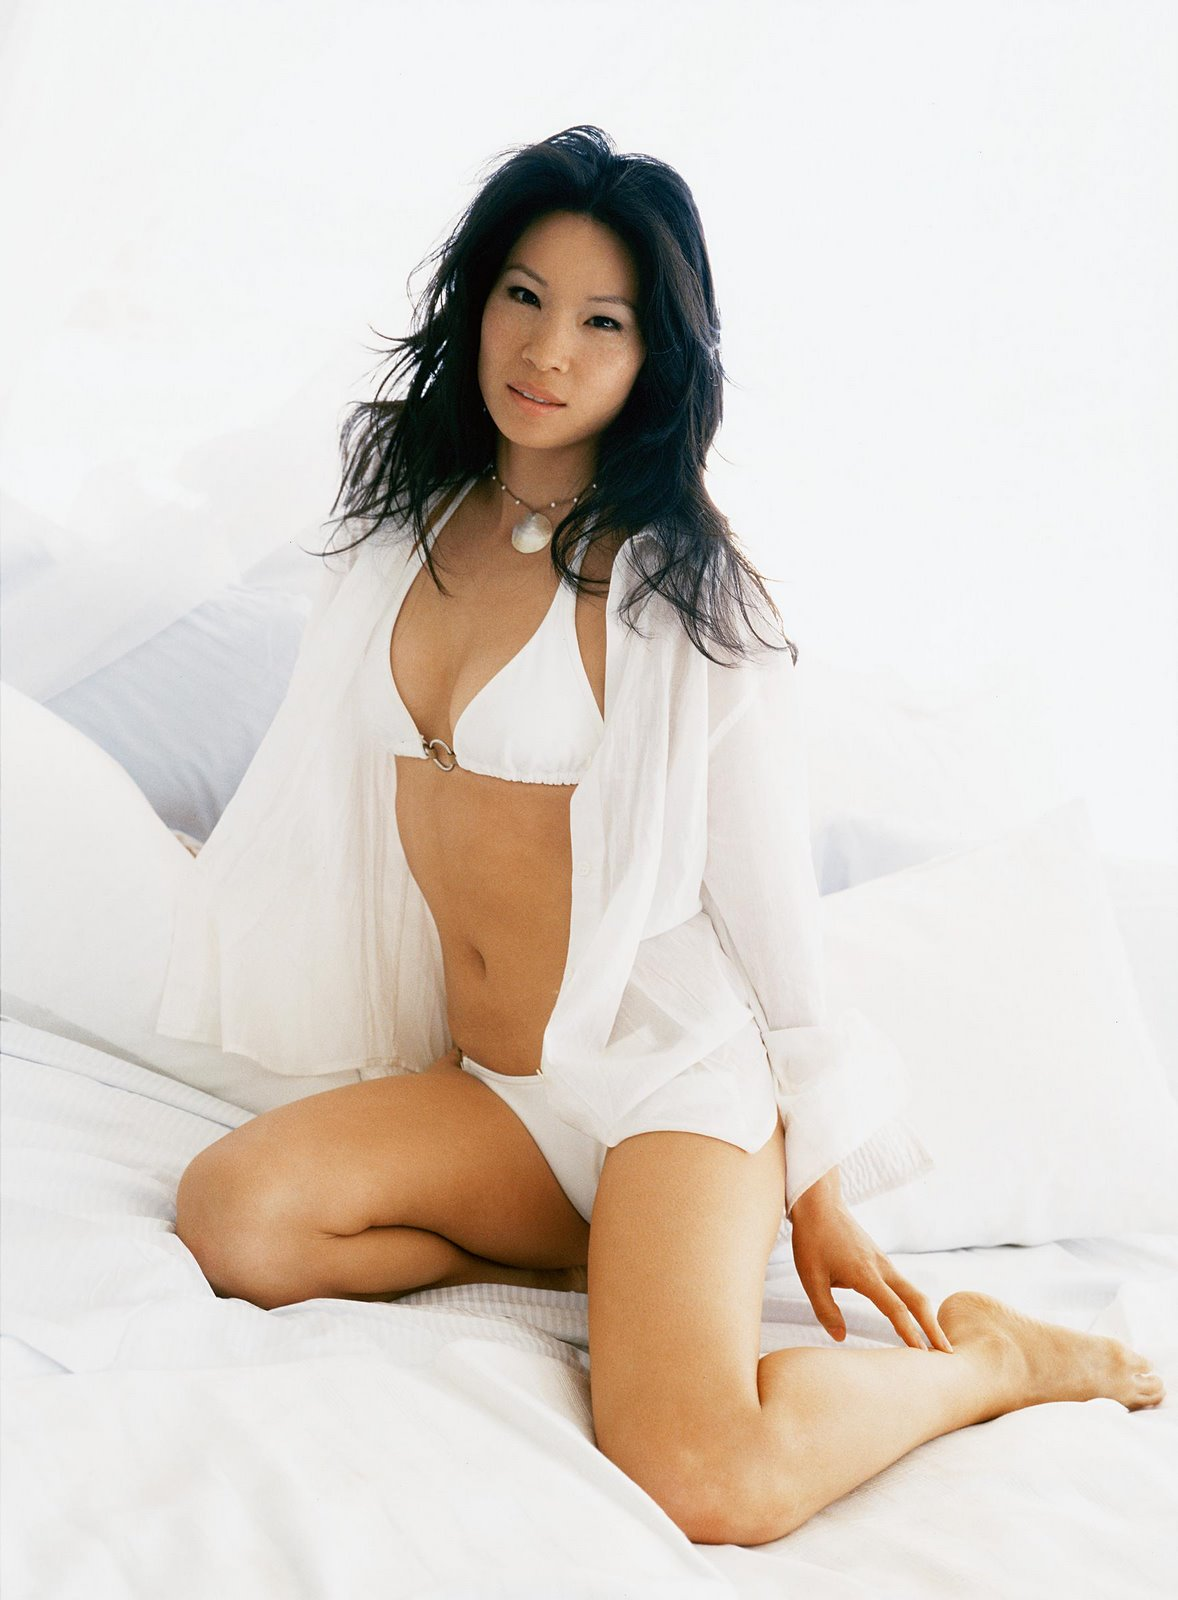 For More News About: Lucy Liu